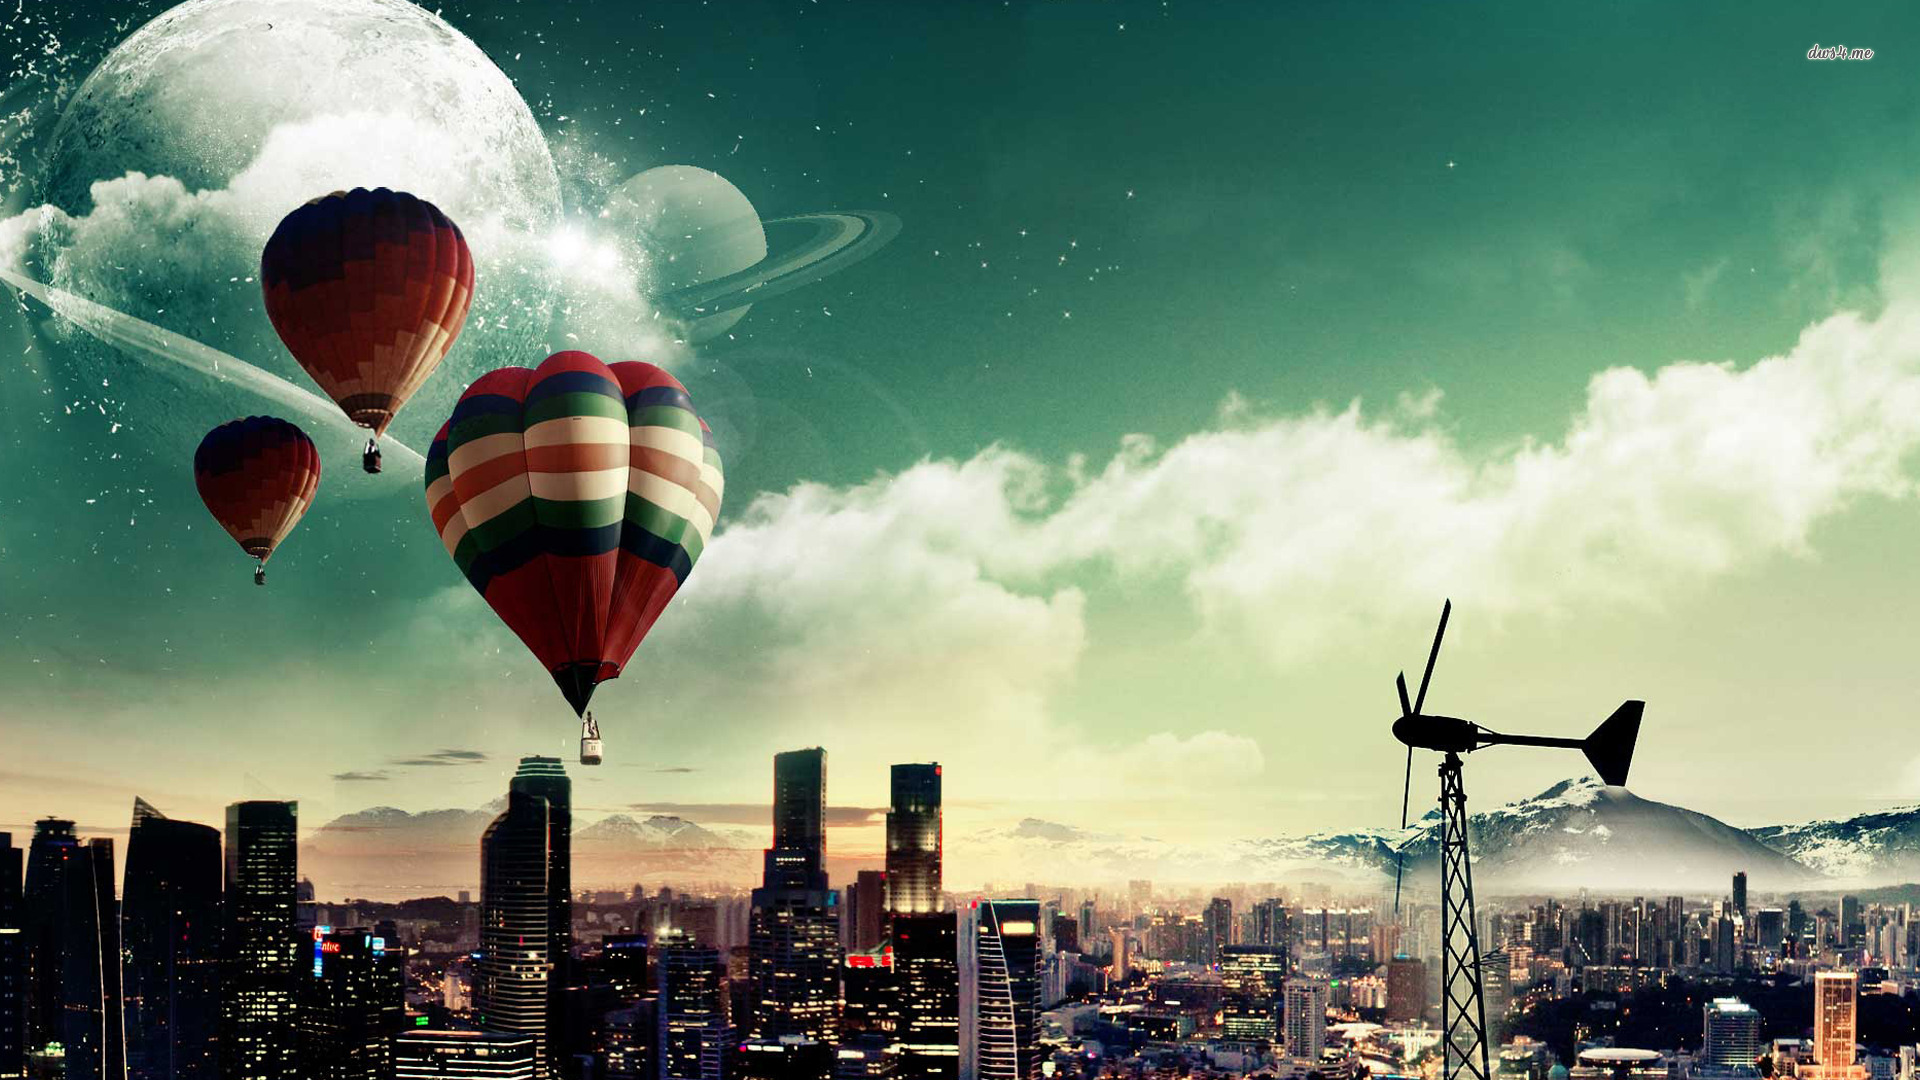 ... Hot air balloons wallpaper 1920x1080 ...